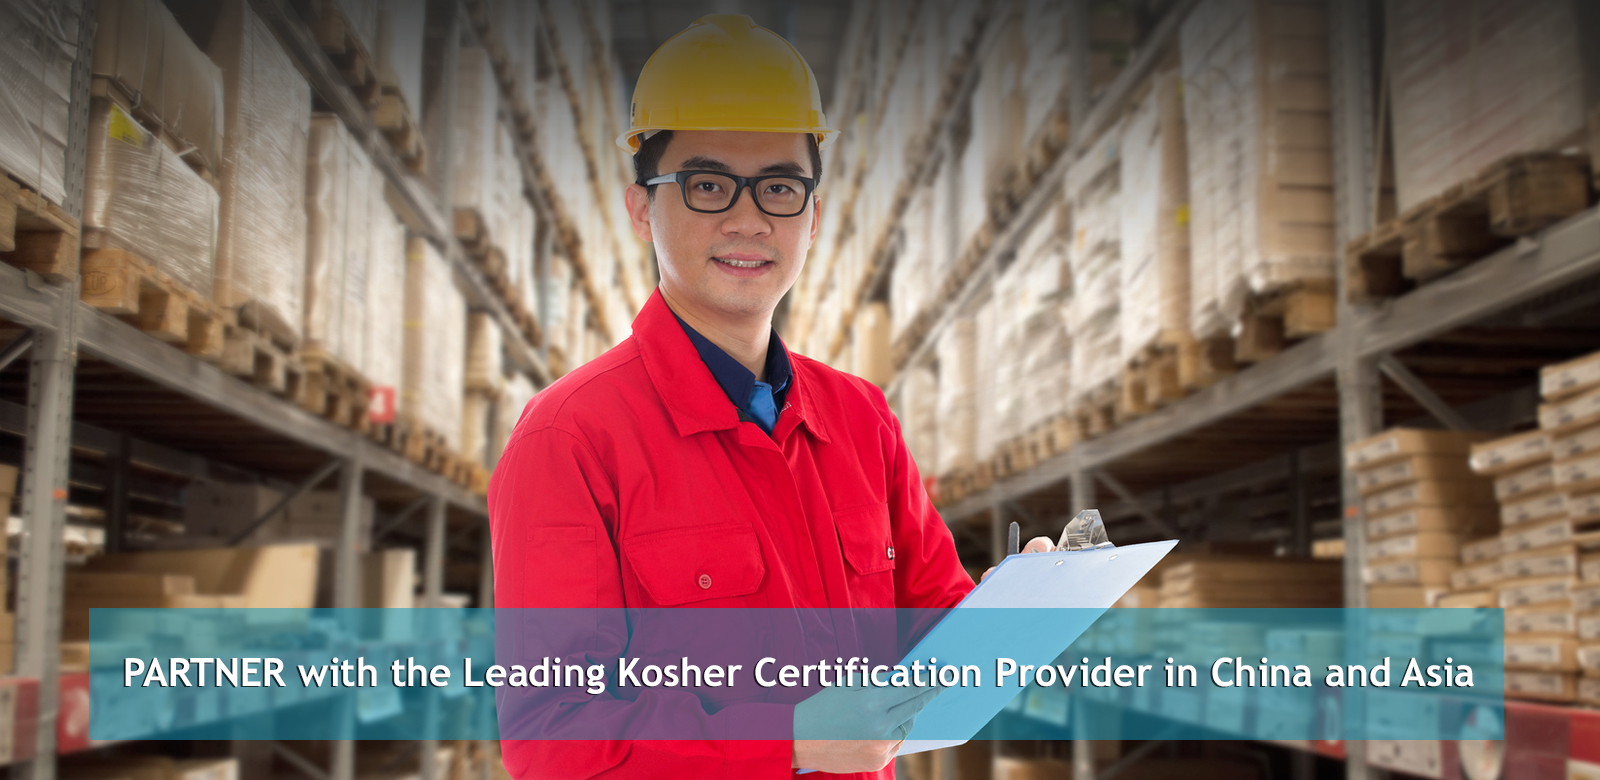 Leading Kosher Certification Provider in China and Asia